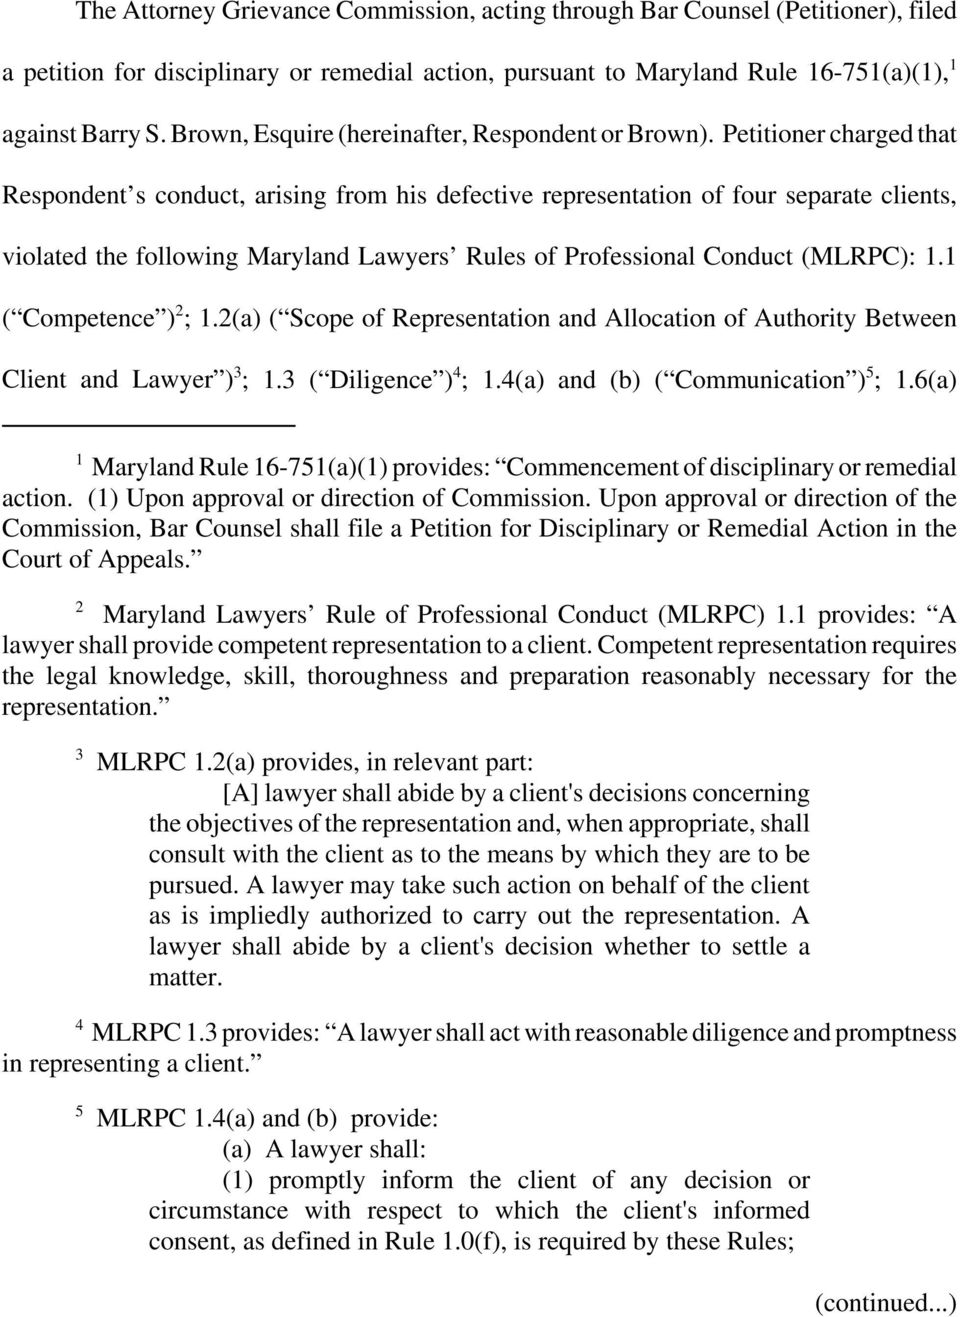 Petitioner charged that Respondent s conduct, arising from his defective representation of four separate clients, violated the following Maryland Lawyers Rules of Professional Conduct (MLRPC): 1.